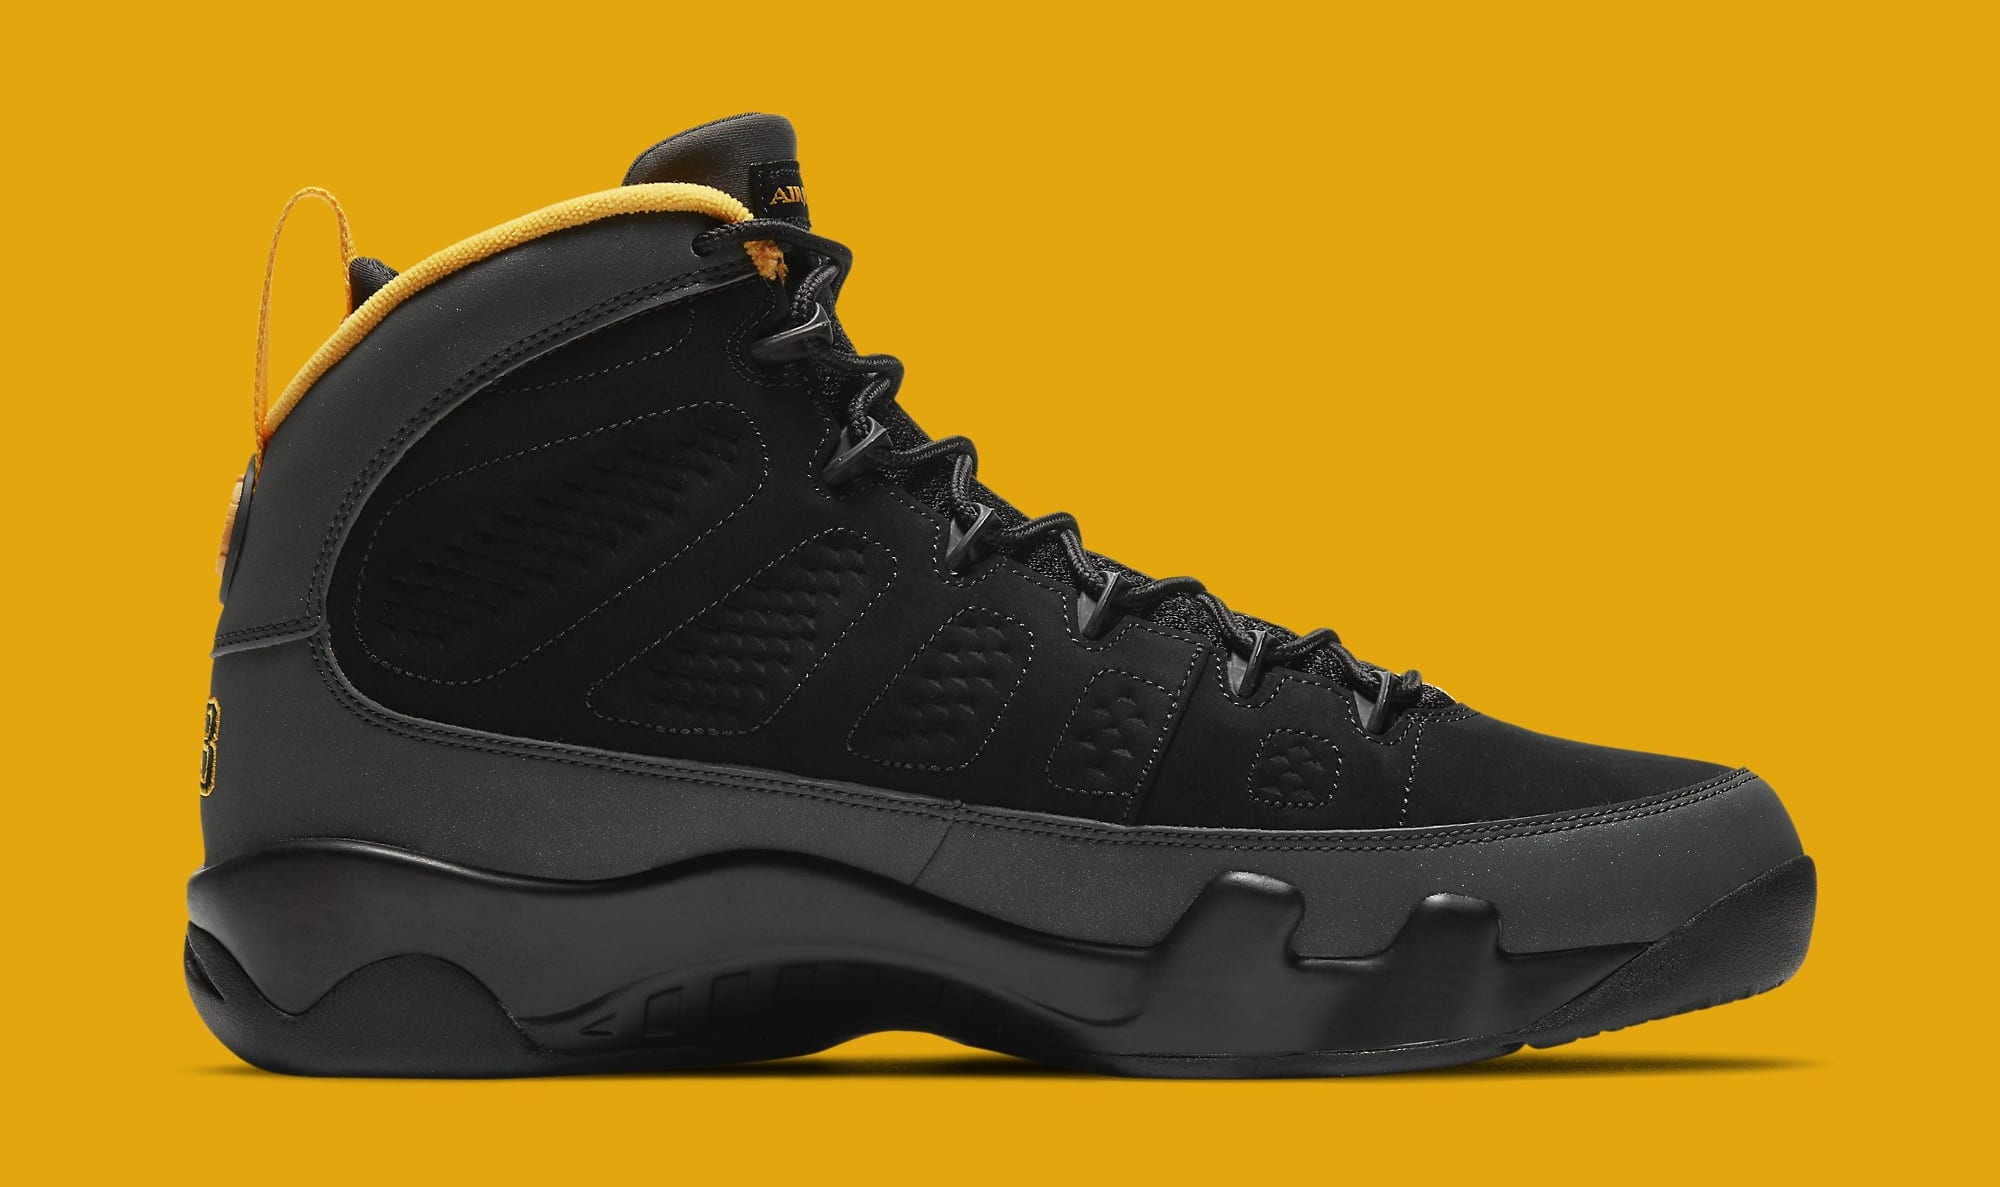 Air Jordan 9 Retro 'University Gold' CT8019-070 Medial